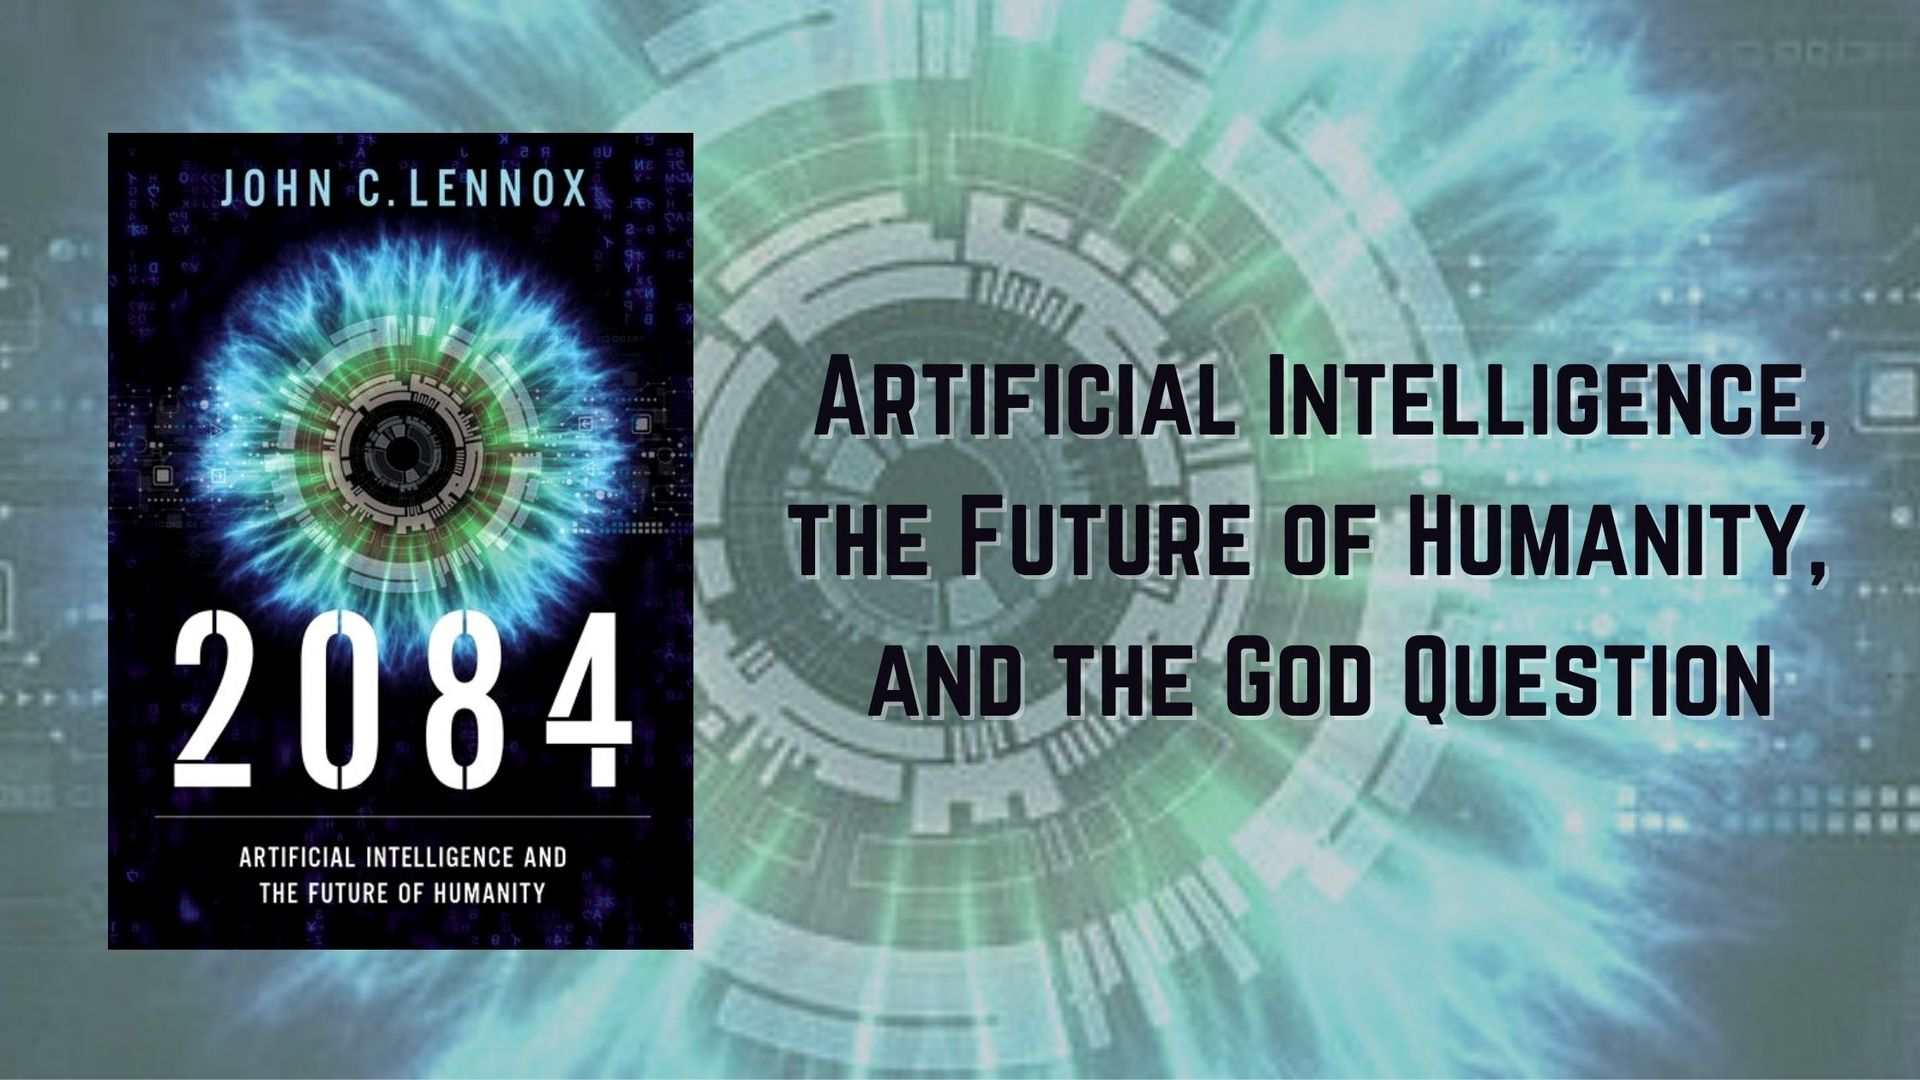 2084 - Review of the latest book by John Lennox